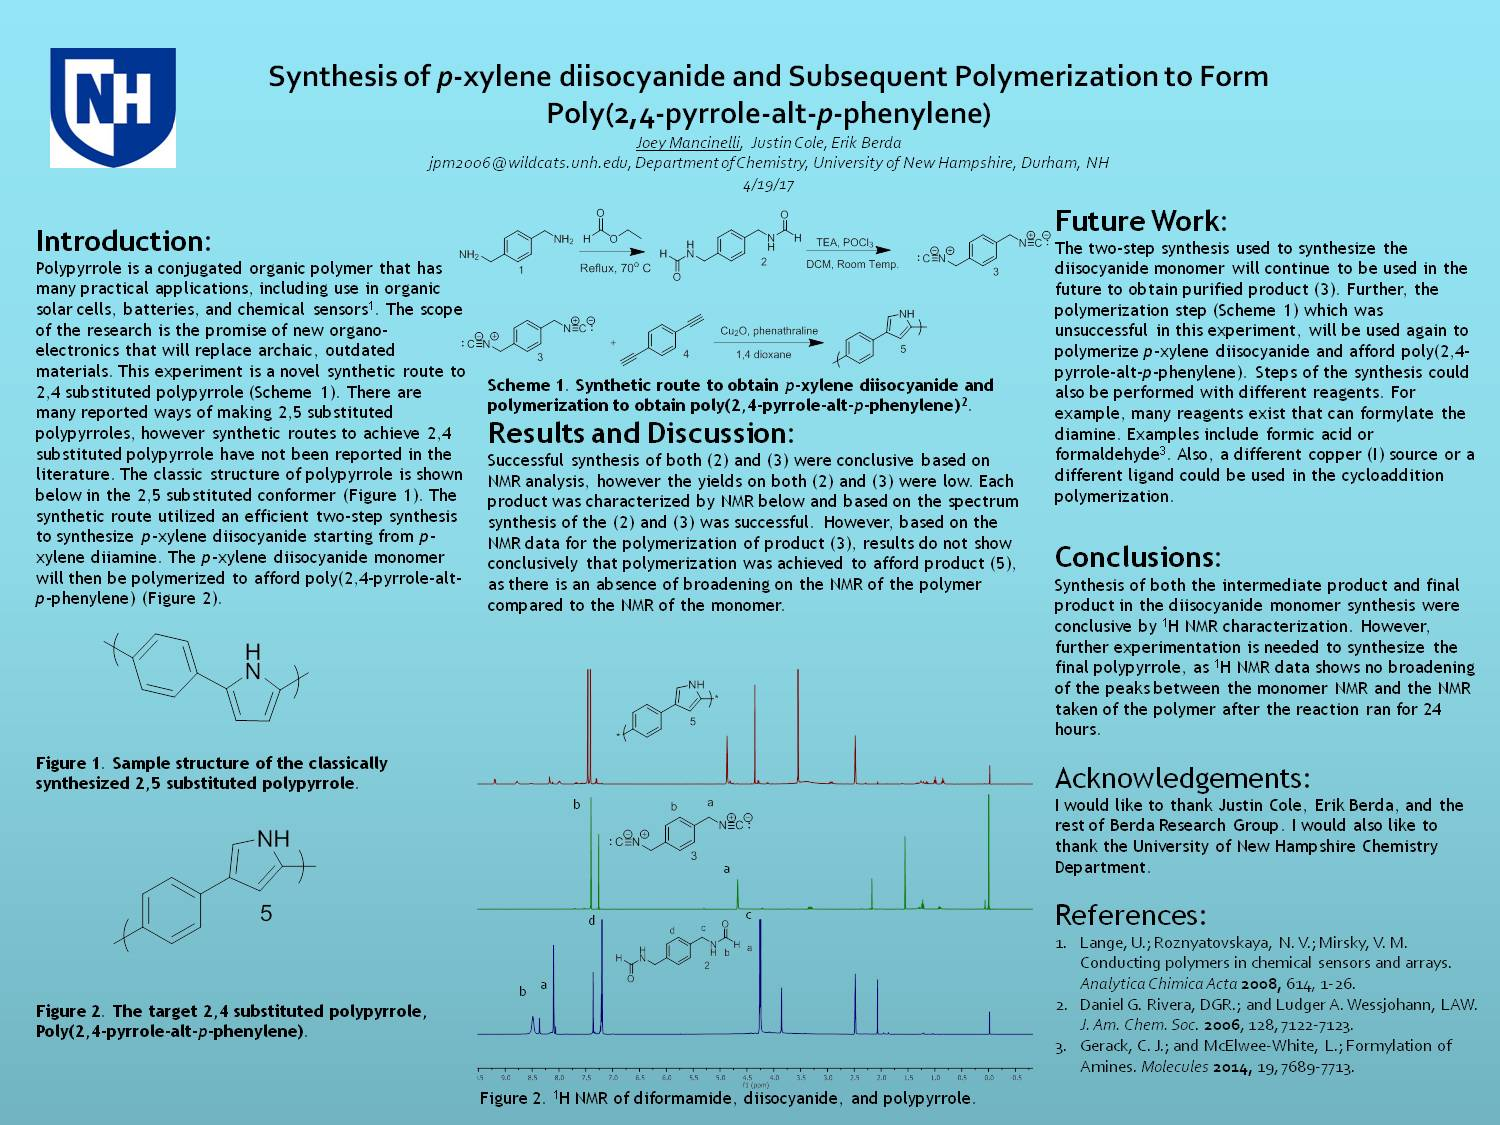 Synthesis Of P-Xylene Diisocyanide And Subsequent Polymerization To Form Poly(2,4-Pyrrole-Alt-P-Phenylene)  by jpm2006